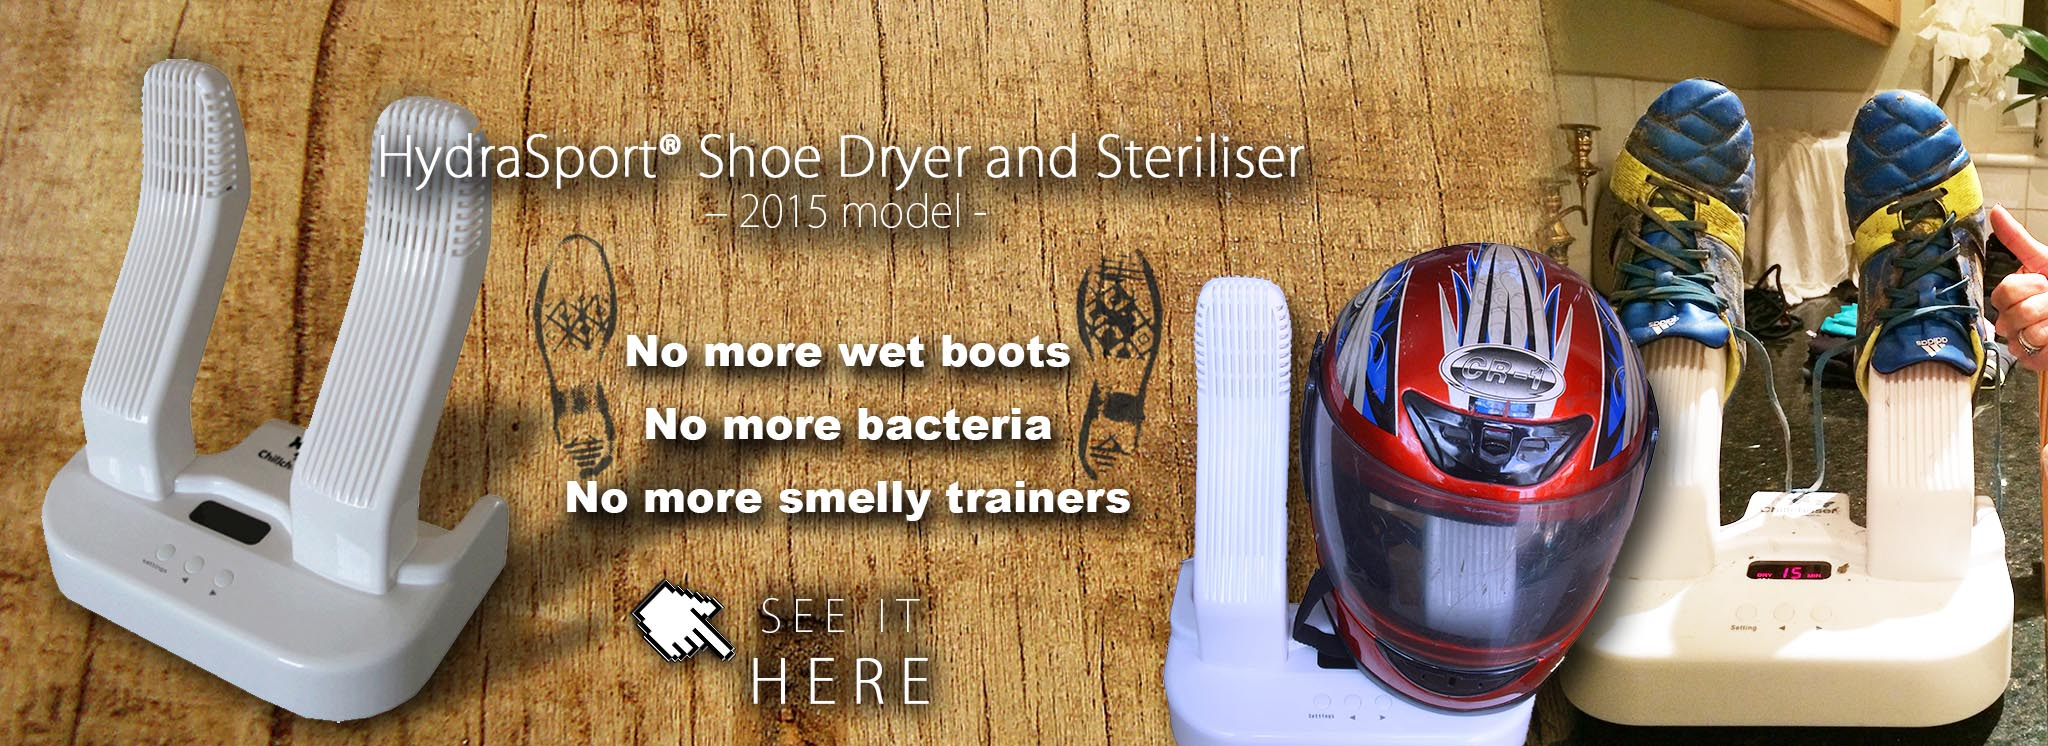 Hydra Sport Shoe Dryer